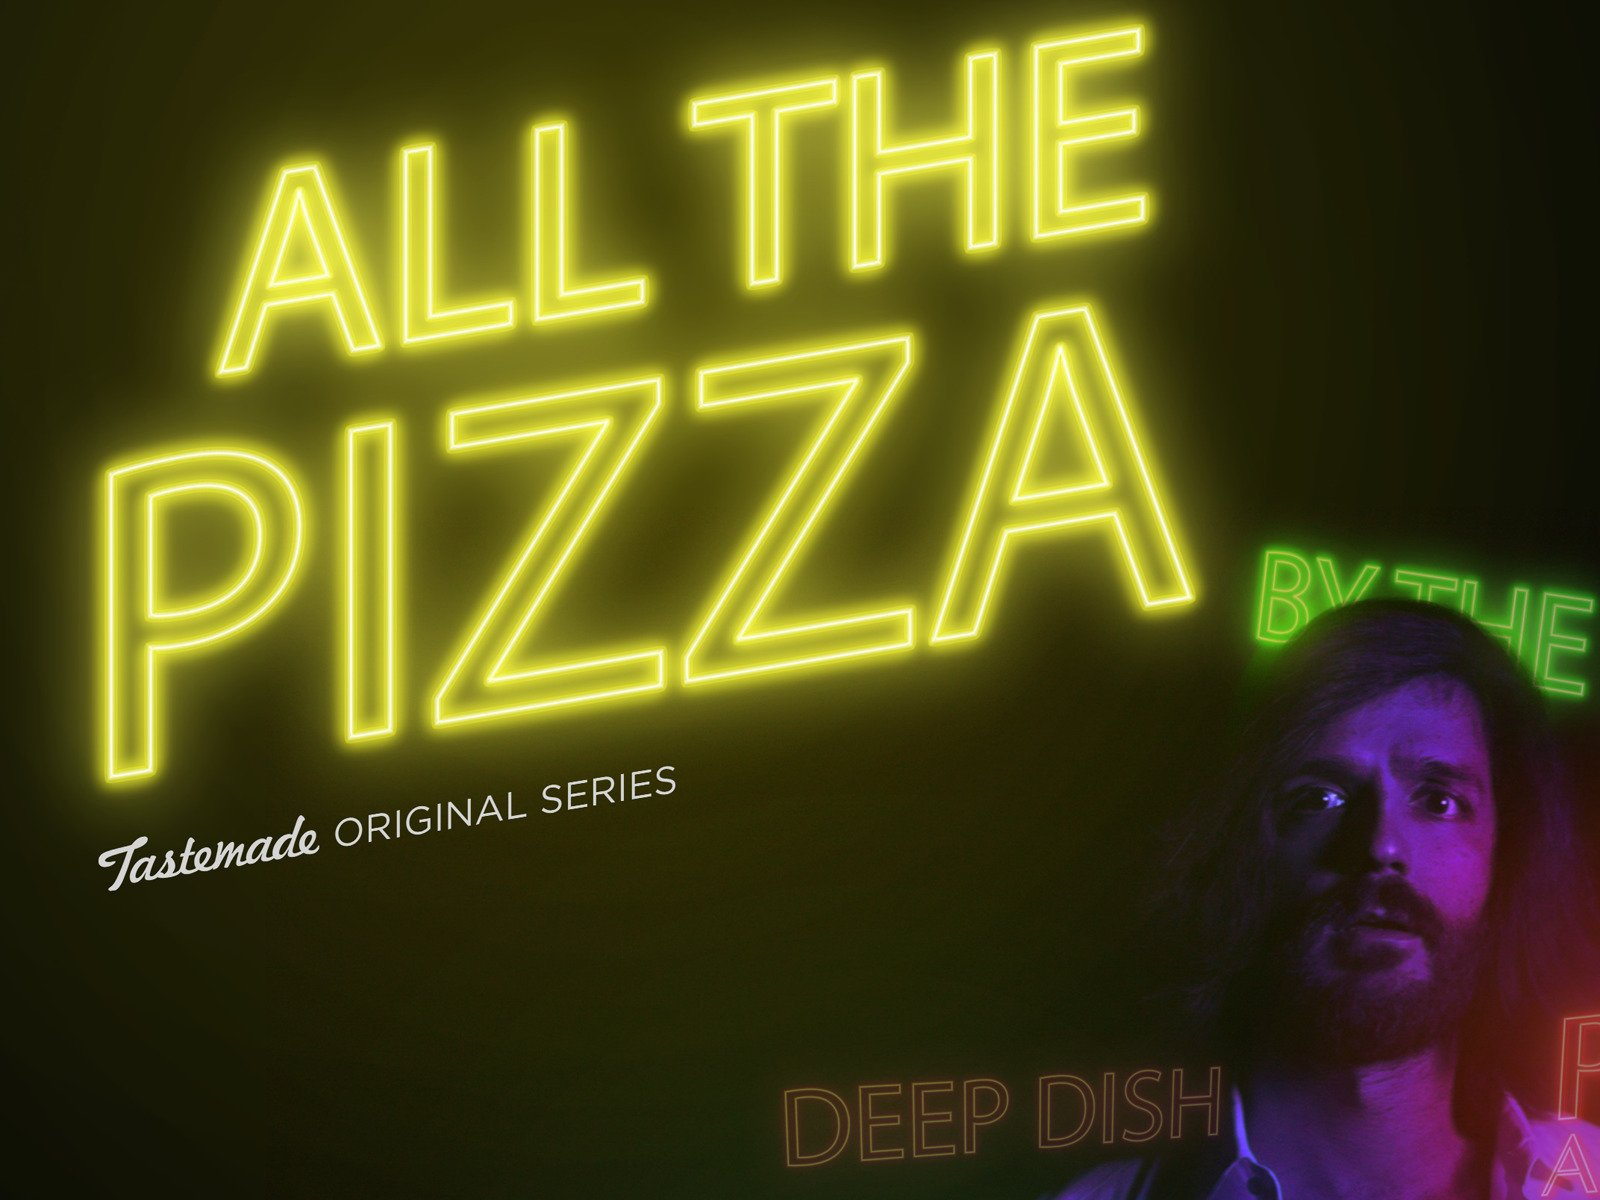 All the Pizza - Season 1